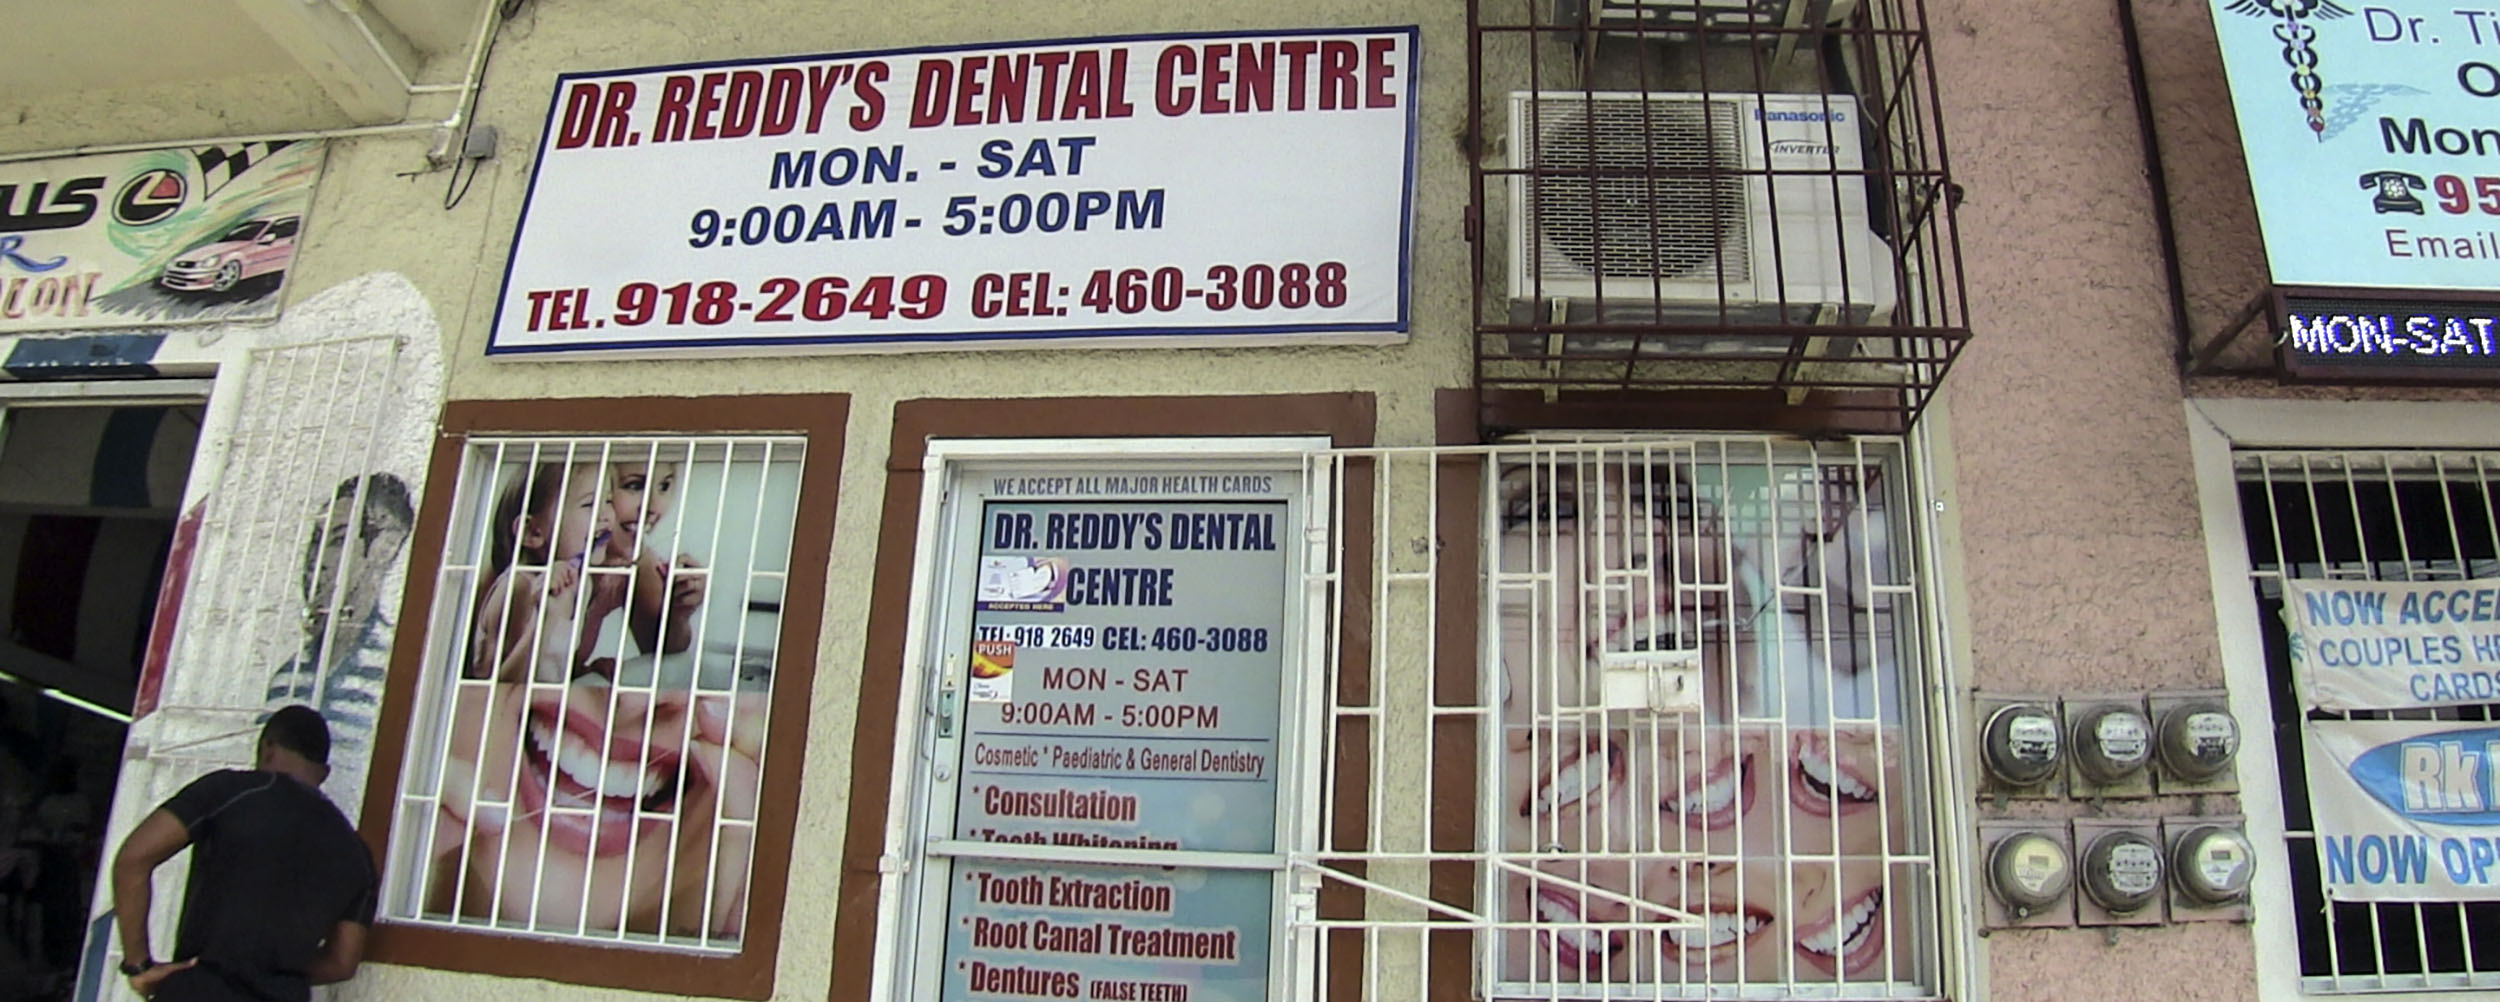 Dr. Reddy's Dental Office - White Swan Plaza - Nonpareil Road, Negril Jamaica